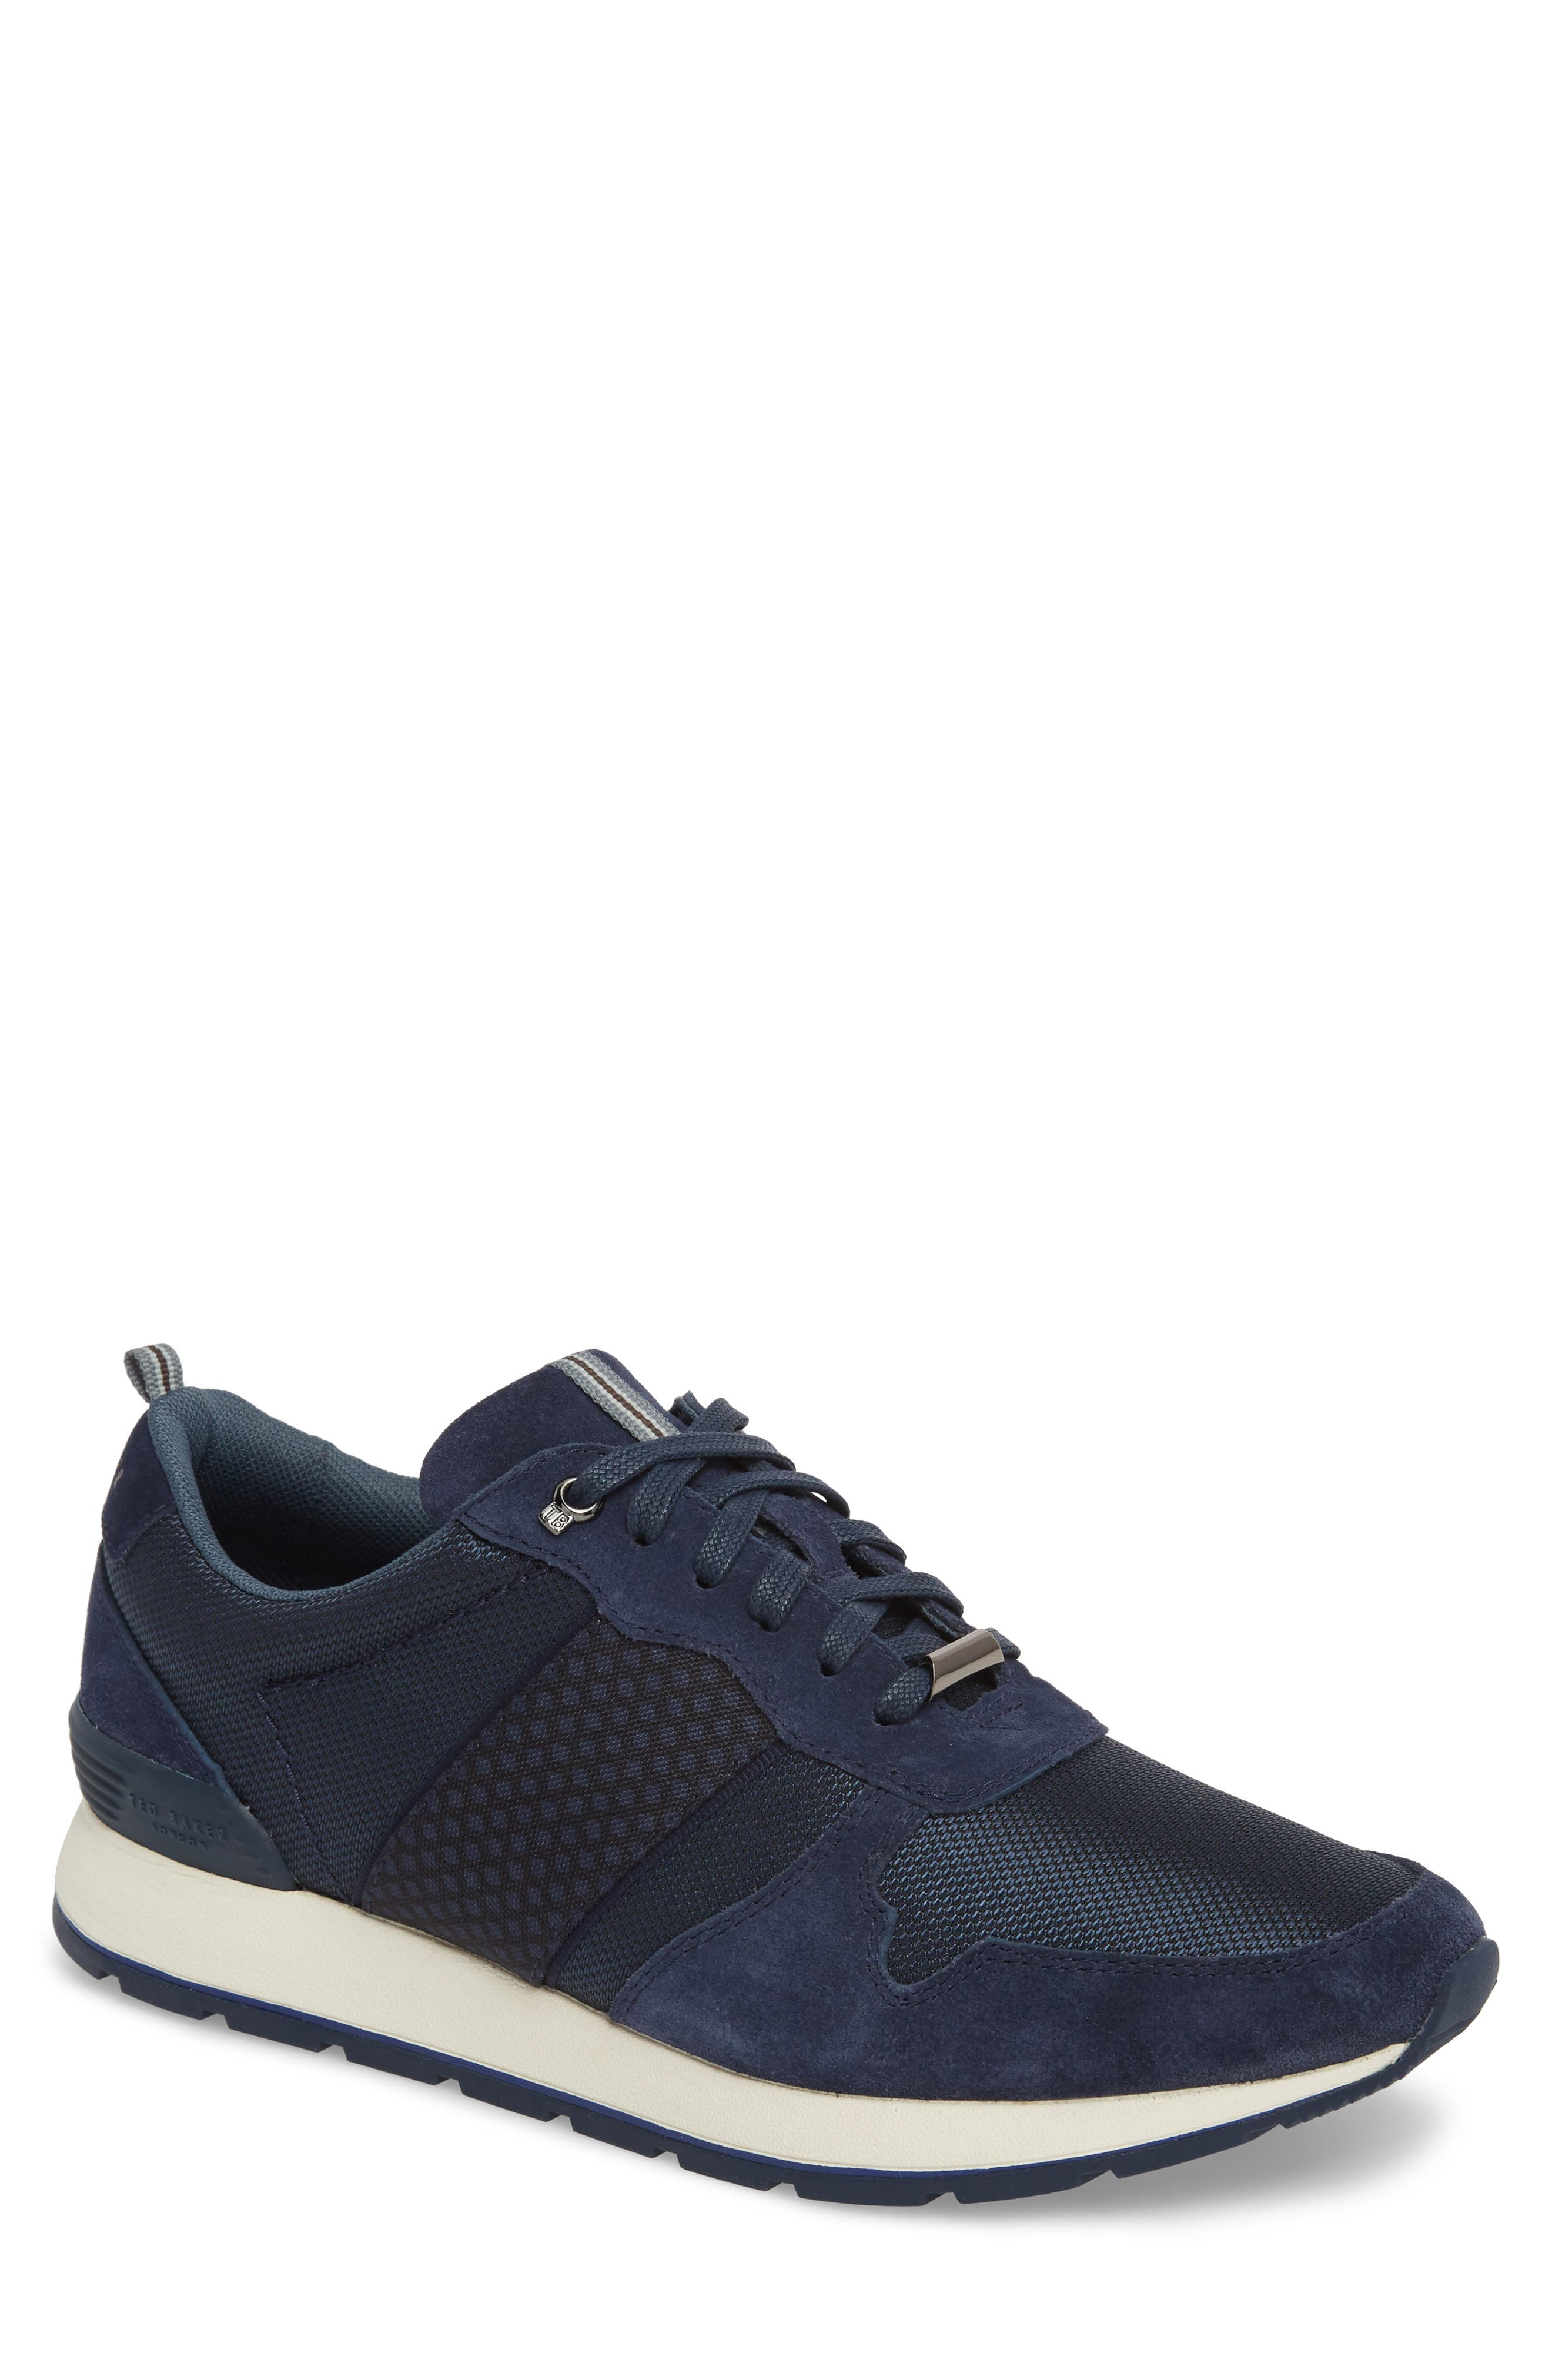 Hebey Lace-Up Sneaker,                         Main,                         color, DARK BLUE TEXTILE